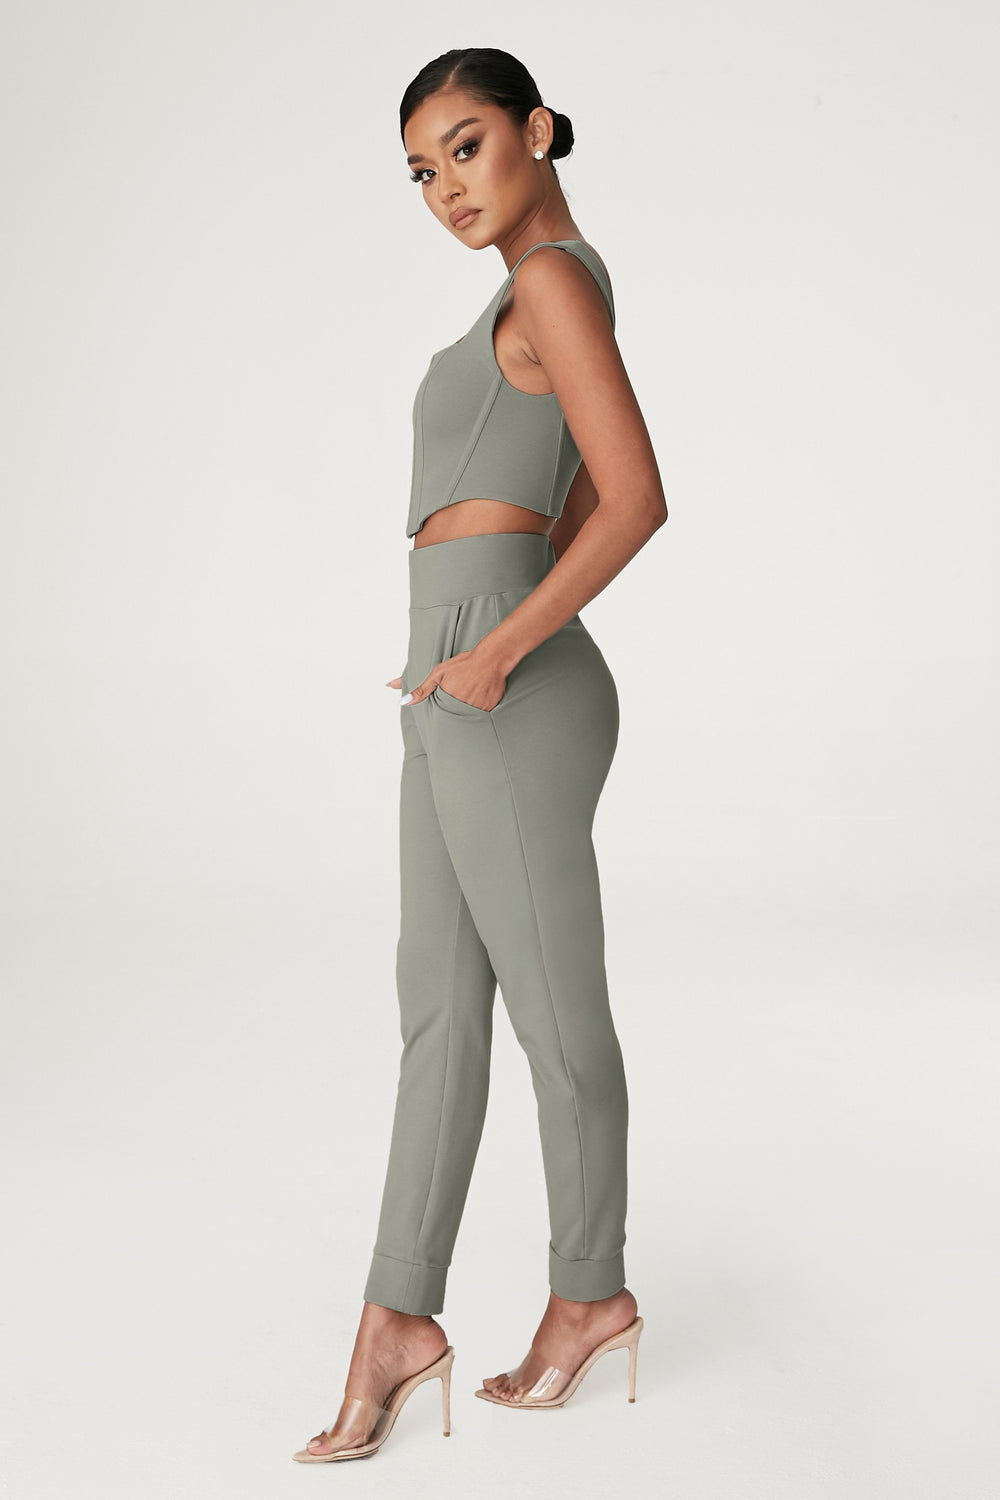 Amelia Fitted High Waisted Joggers - Sage - MESHKI ?id=15024763928651